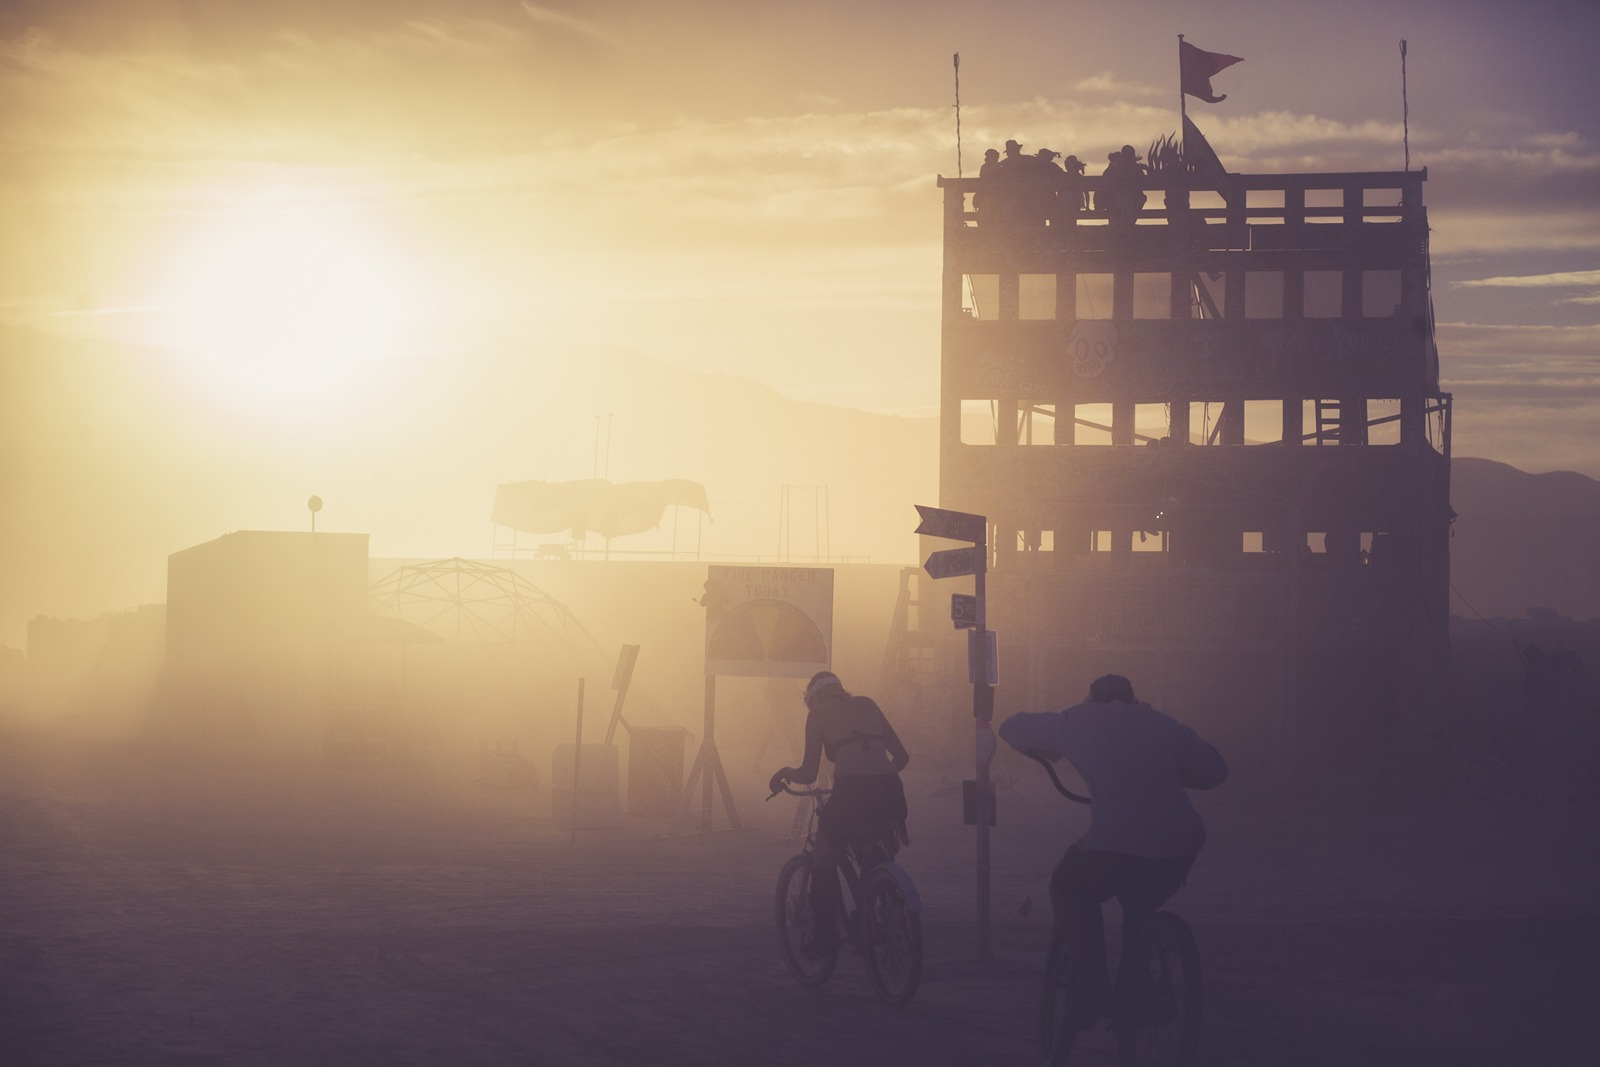 Burning Man - Sandstorm